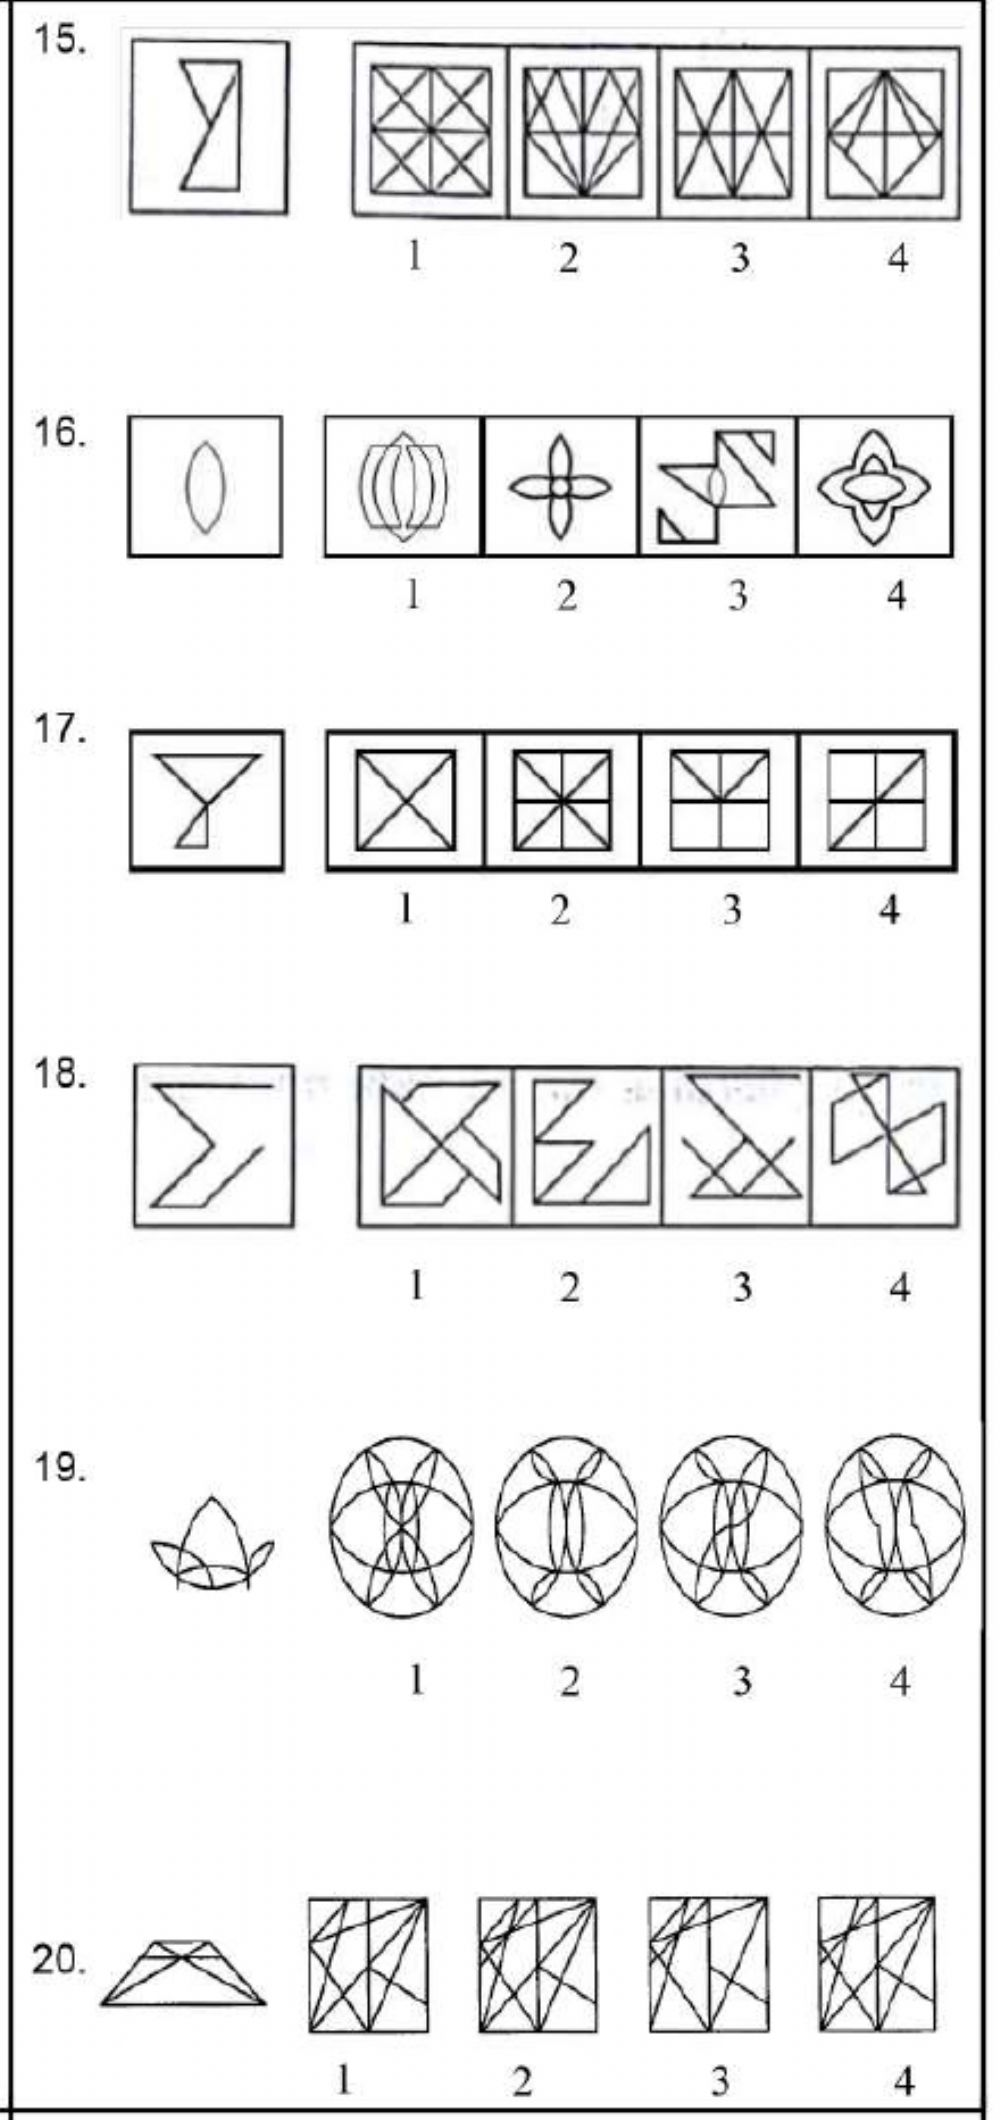 Nmms-Mat-HIDDEN- EMBEDDED FIGURES worksheet